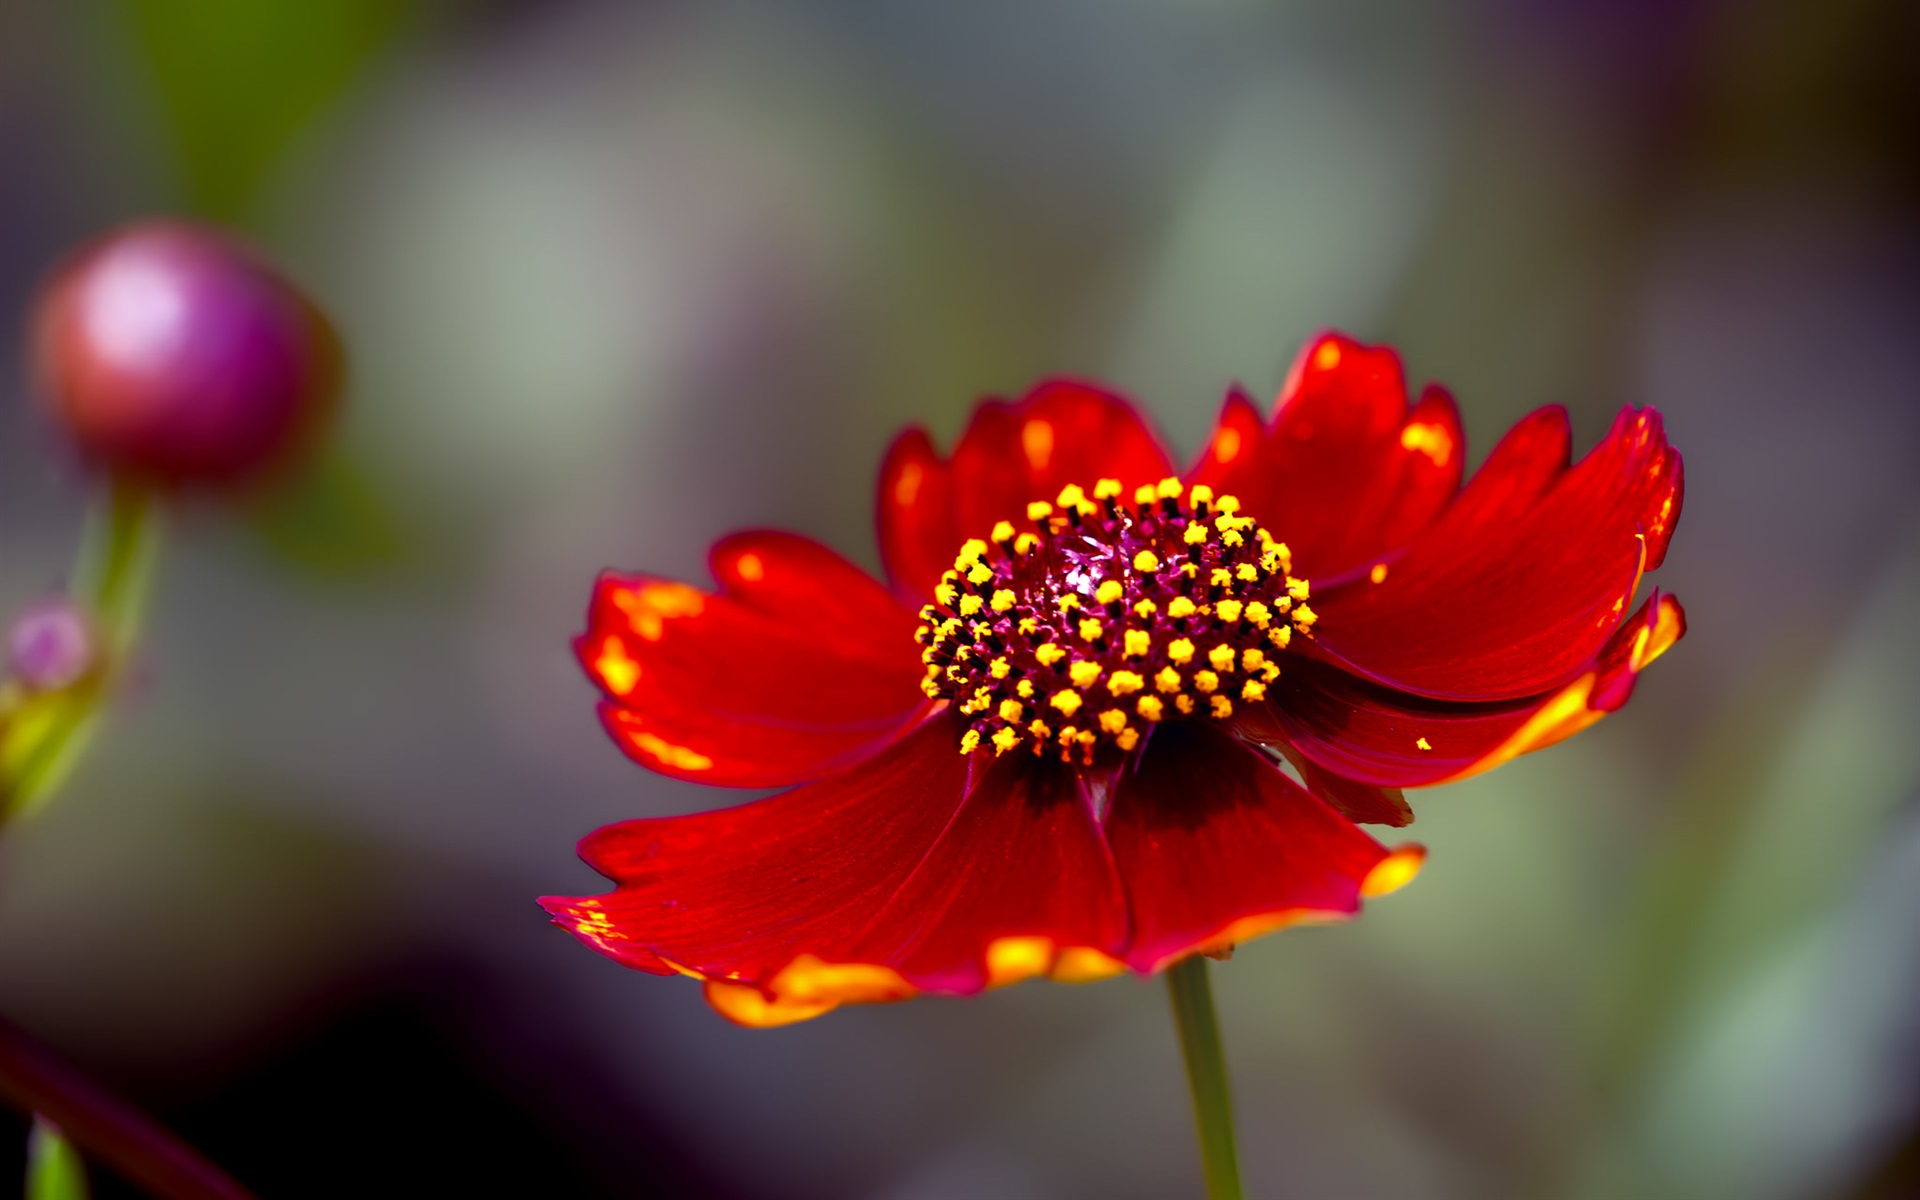 Wallpaper red flower petals close up stamens 1920x1200 hd picture download this wallpaper mightylinksfo